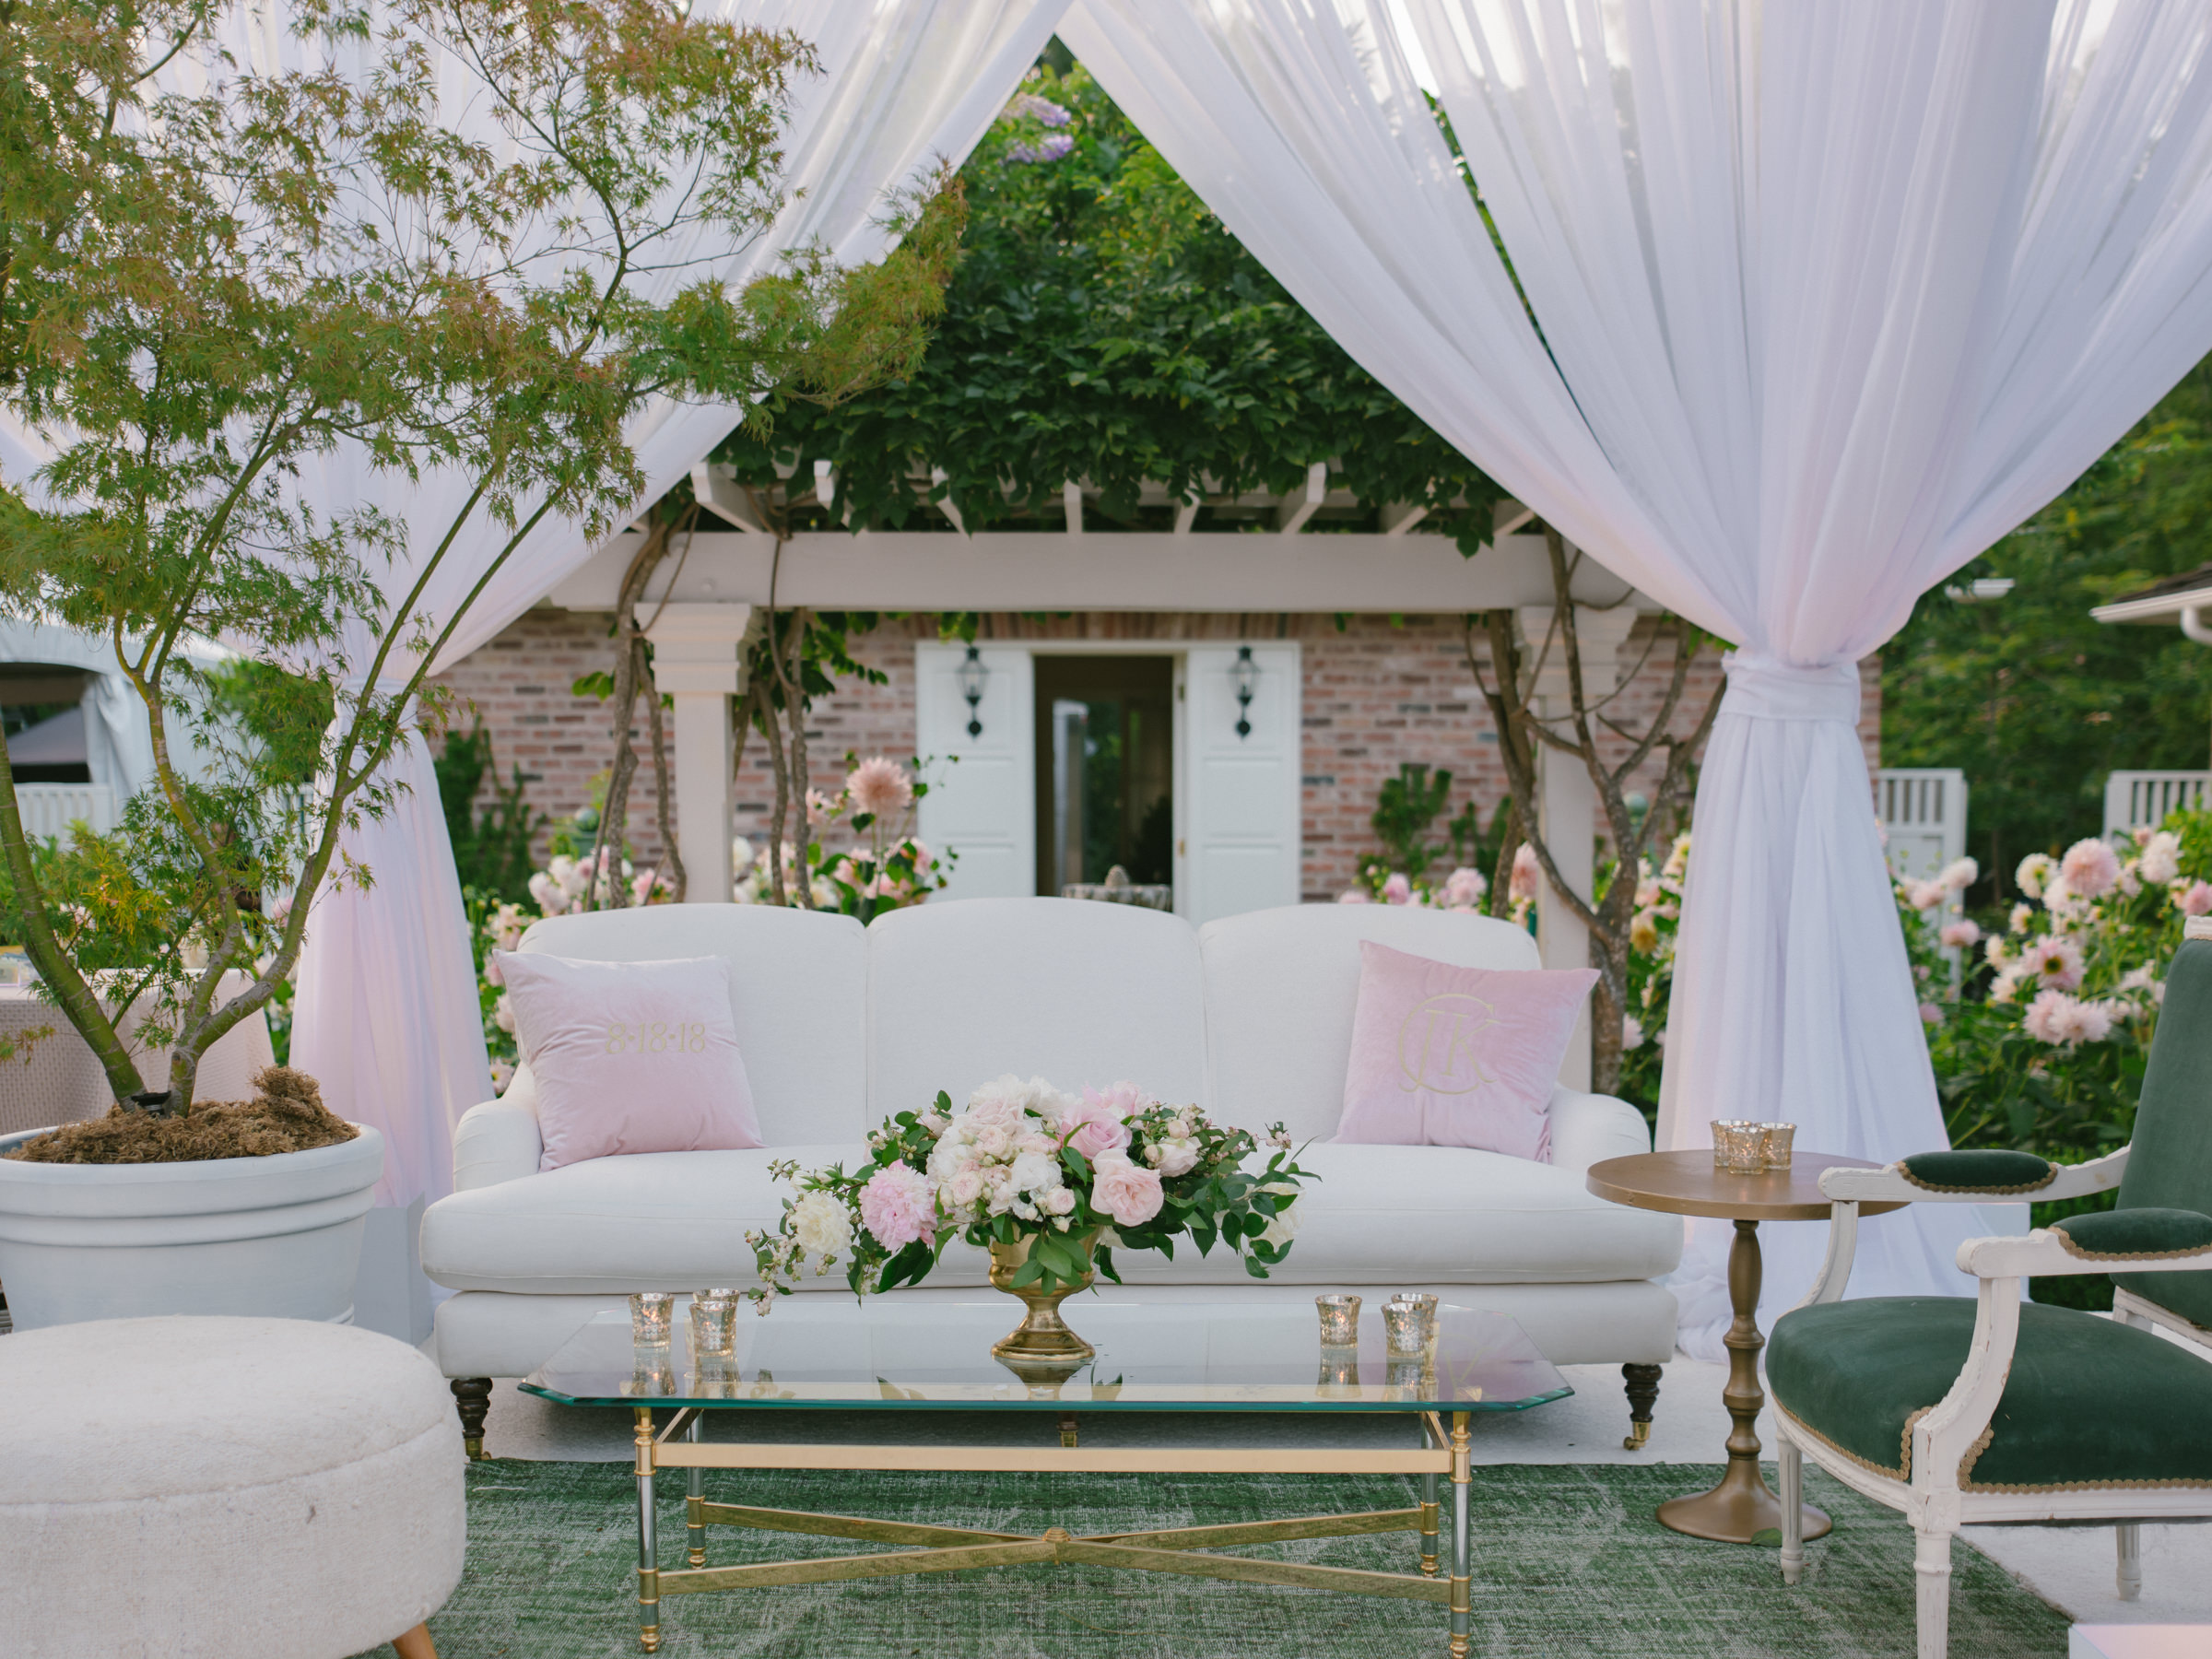 Outdoor reception decor in blush and white with pink roses - photo by Amy and Stuart Photography